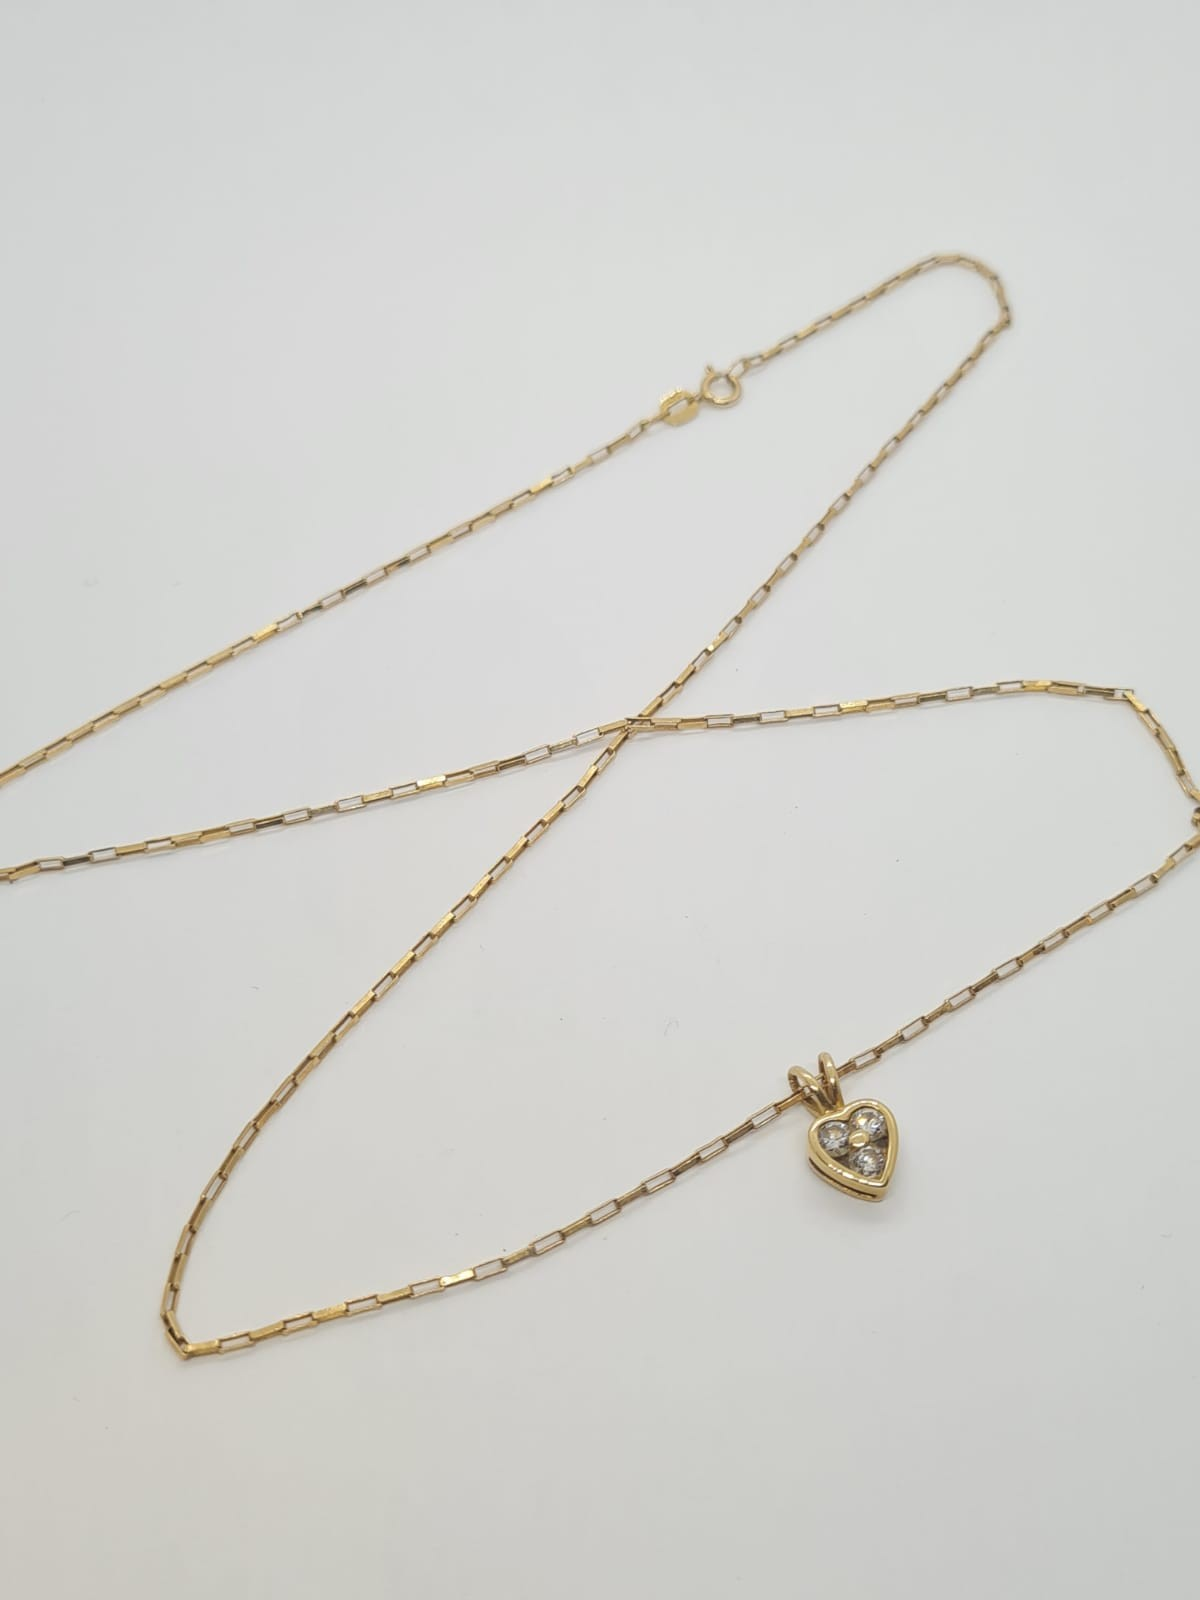 9k Yellow gold DIAMOND SET HEART PENDANDT ON A 52cm long linked box CHAIN, weight 2.5G and approx - Image 3 of 3